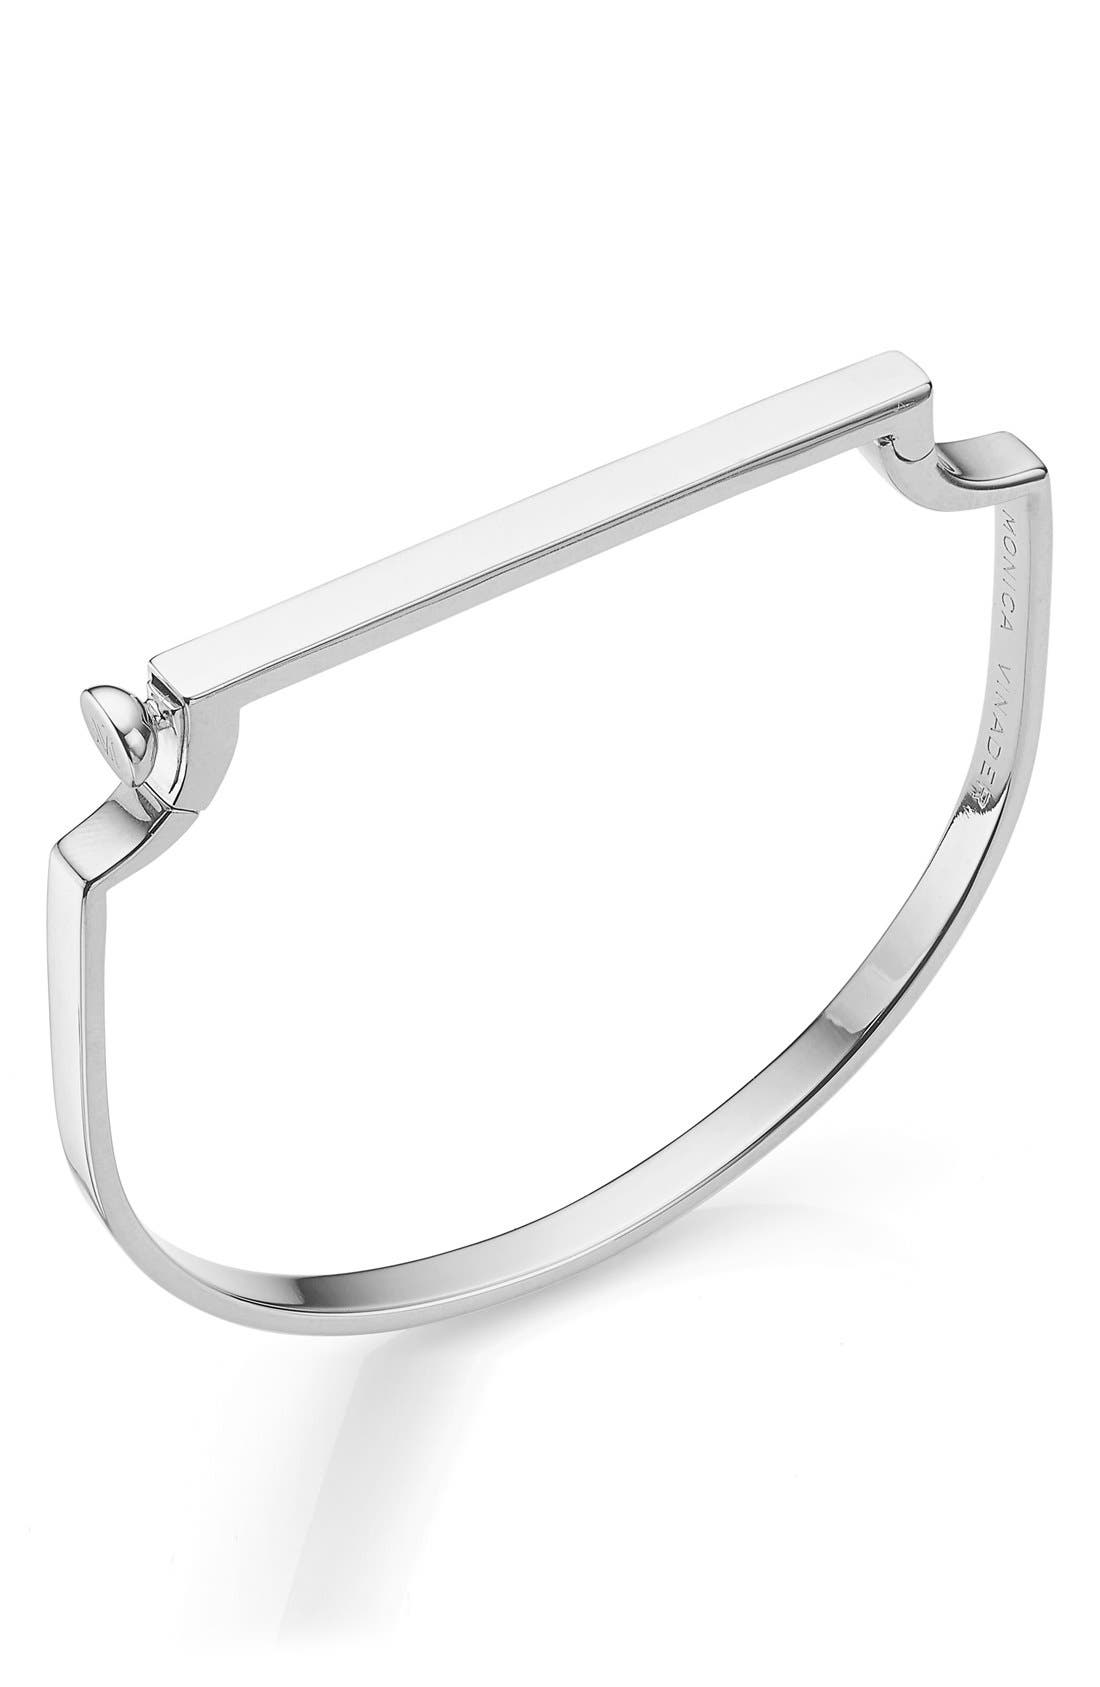 MONICA VINADER Signature Thin Bangle